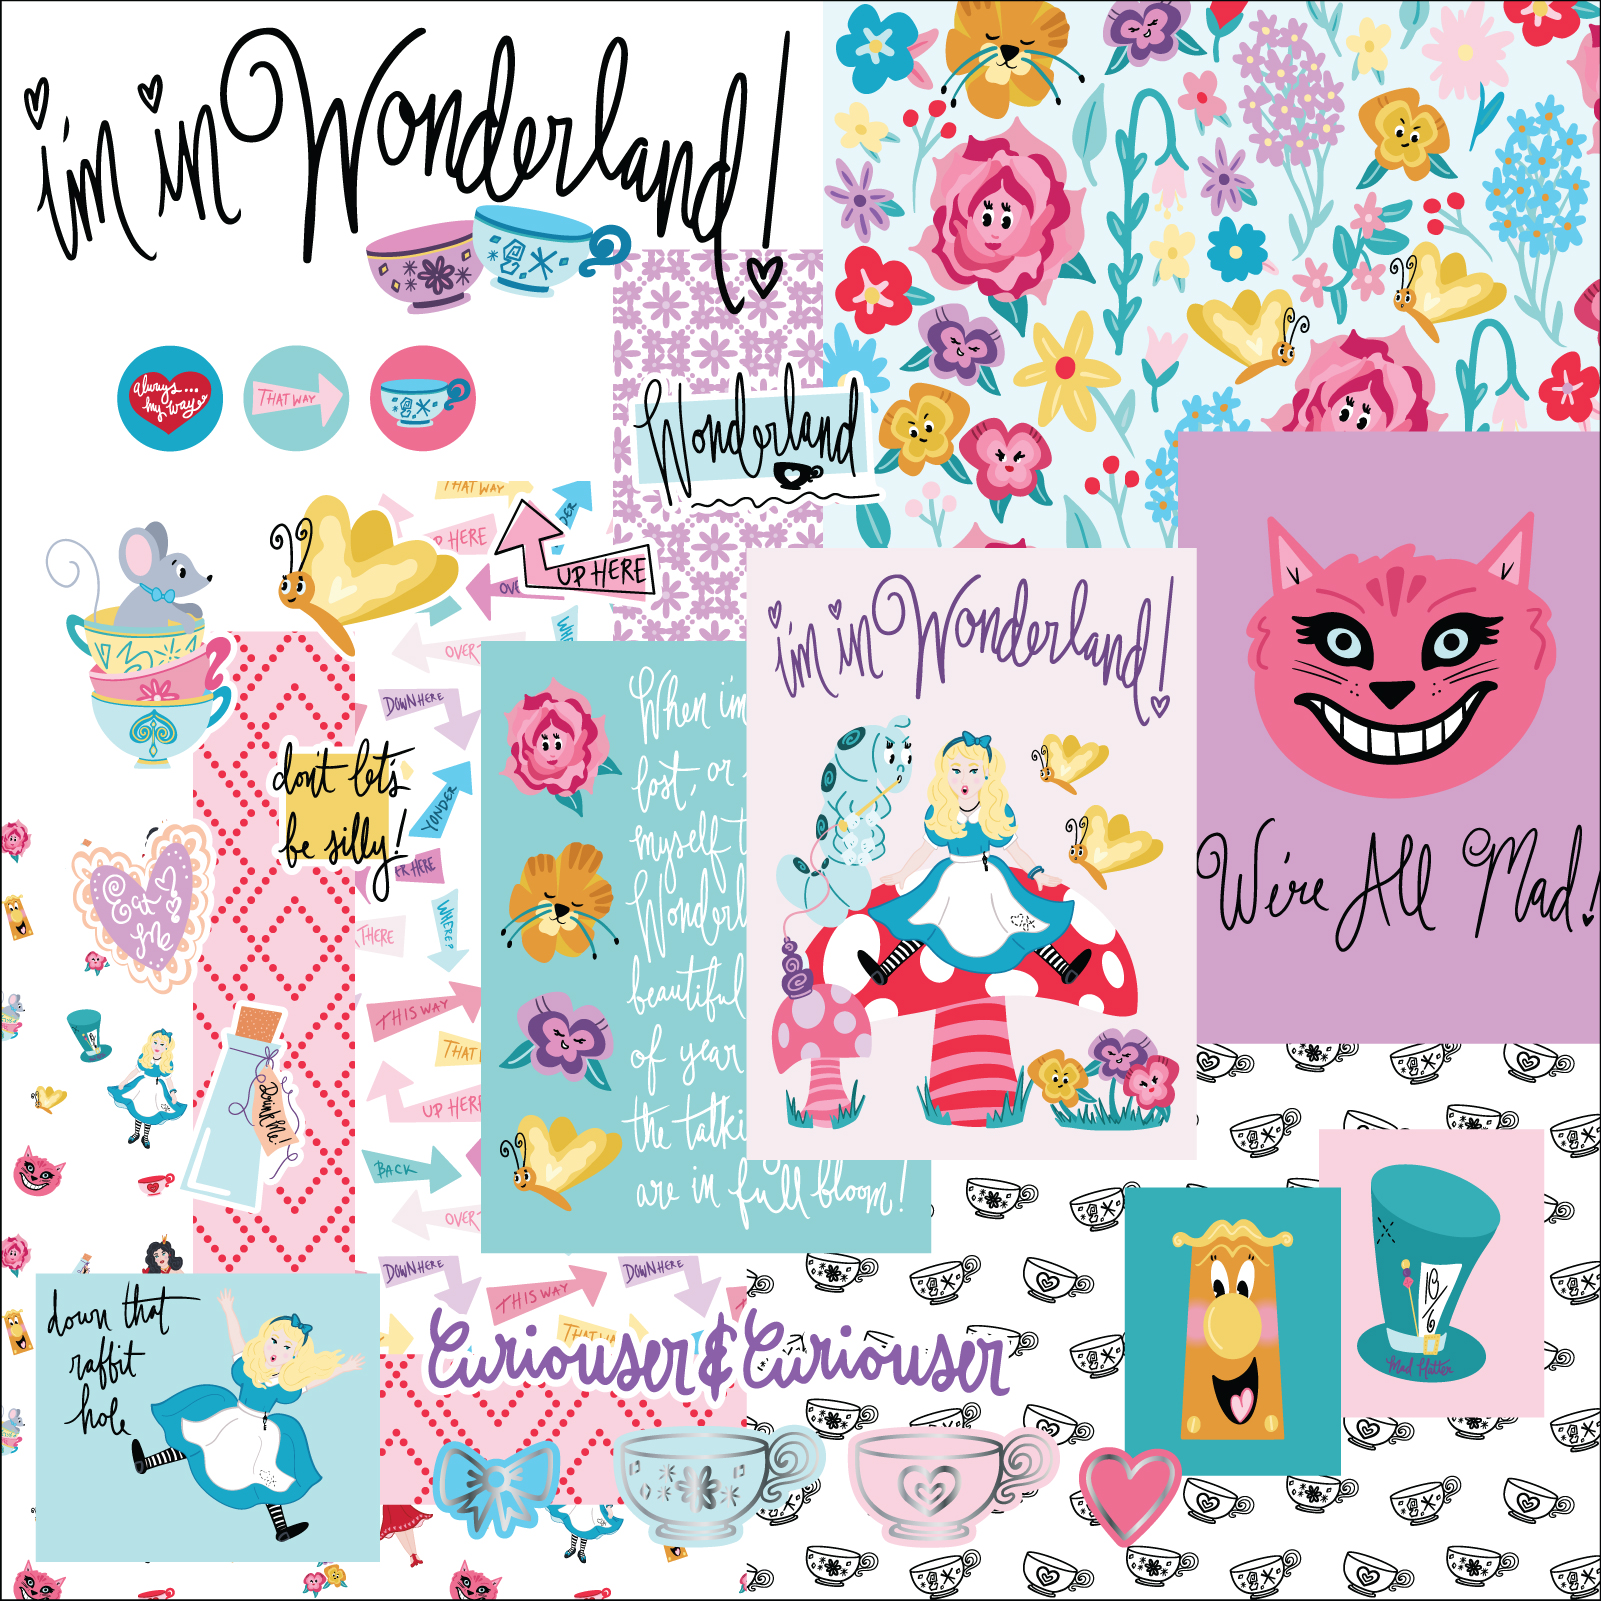 I'm in Wonderland - Sneak Peek-56.jpg